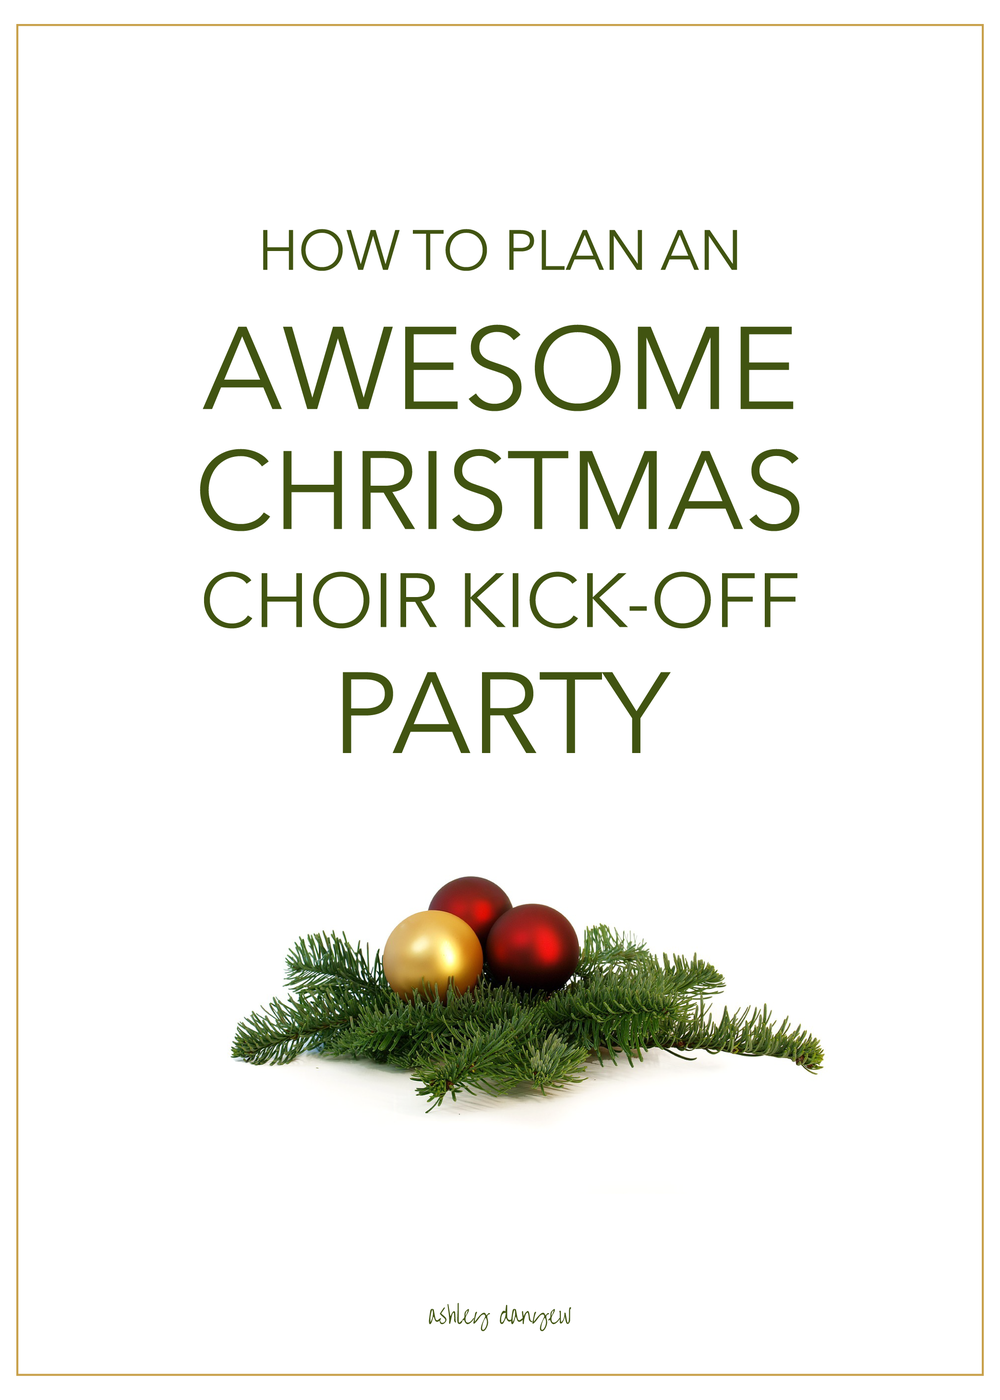 Copy of How to Plan an Awesome Christmas Choir Kick-Off Party